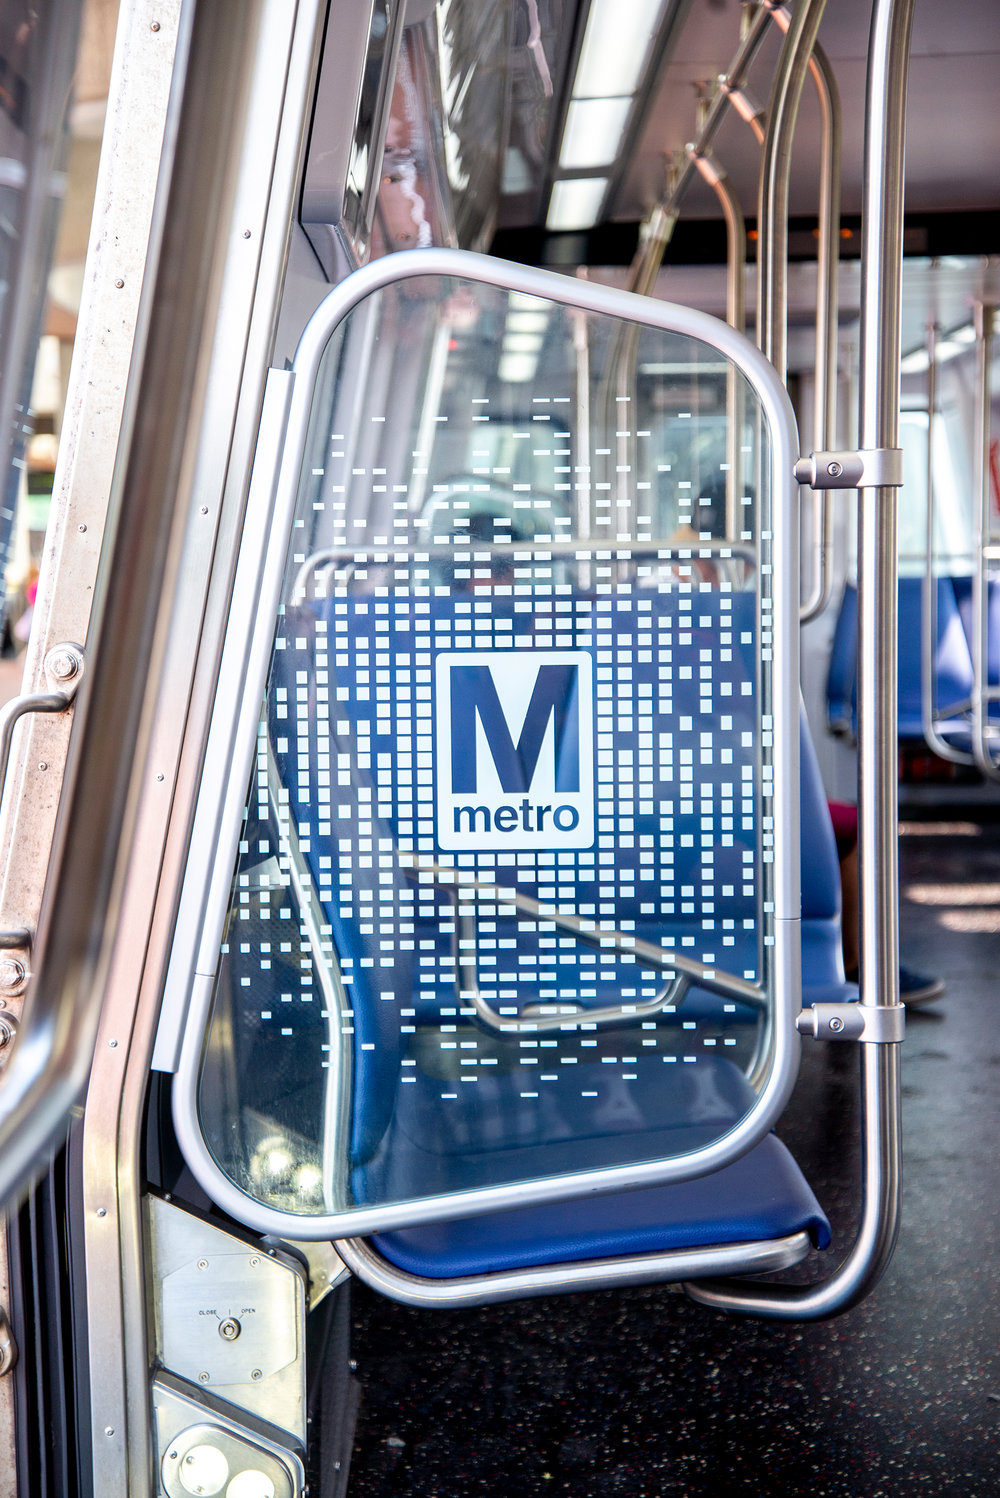 Guide to Washington D.C. - Traveling on the metro